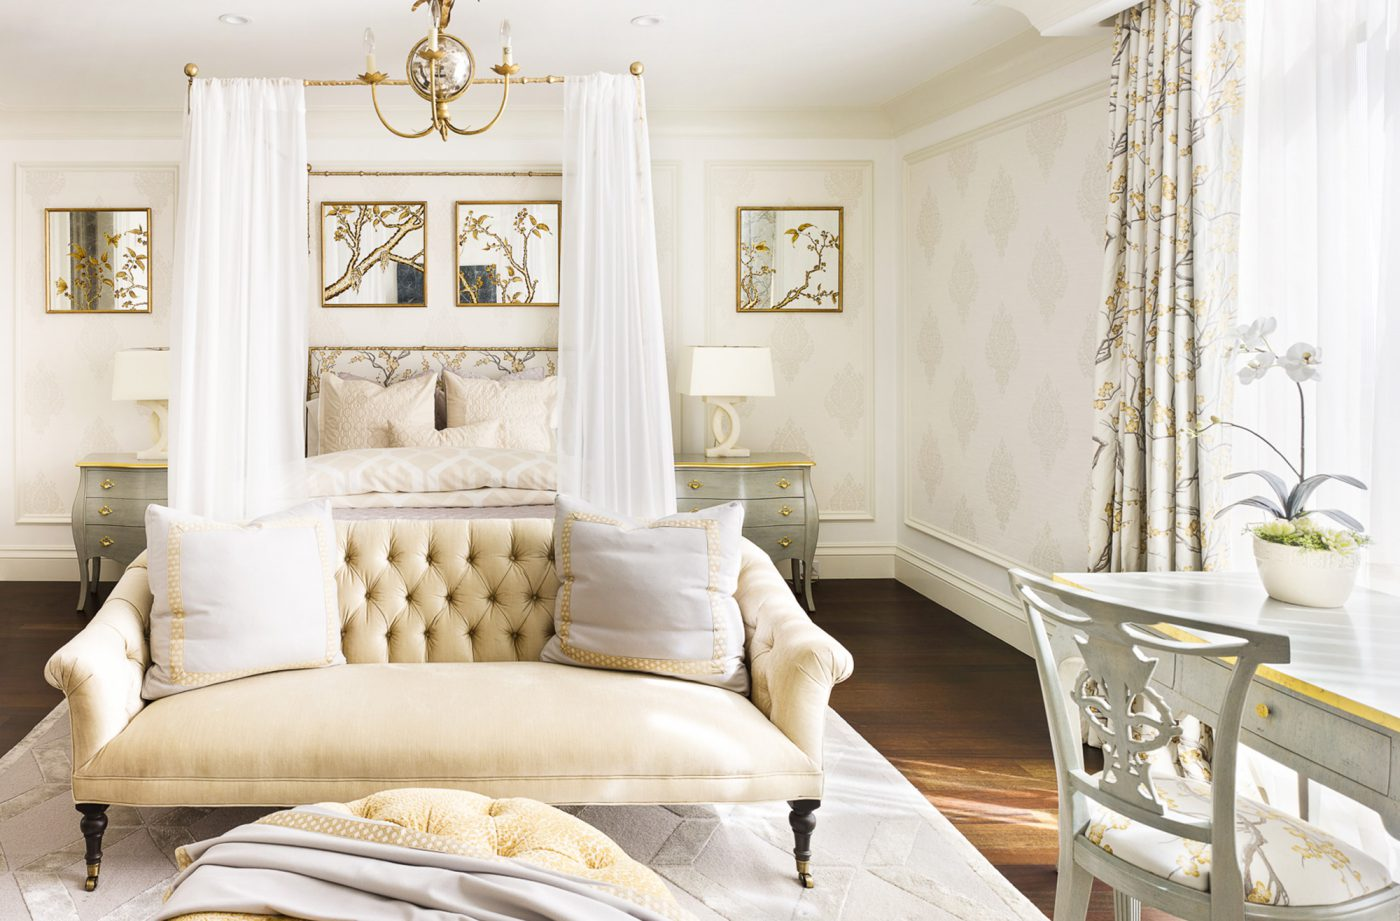 French Inspired Bedroom Bath Tara Dudley Interiors Las Vegas